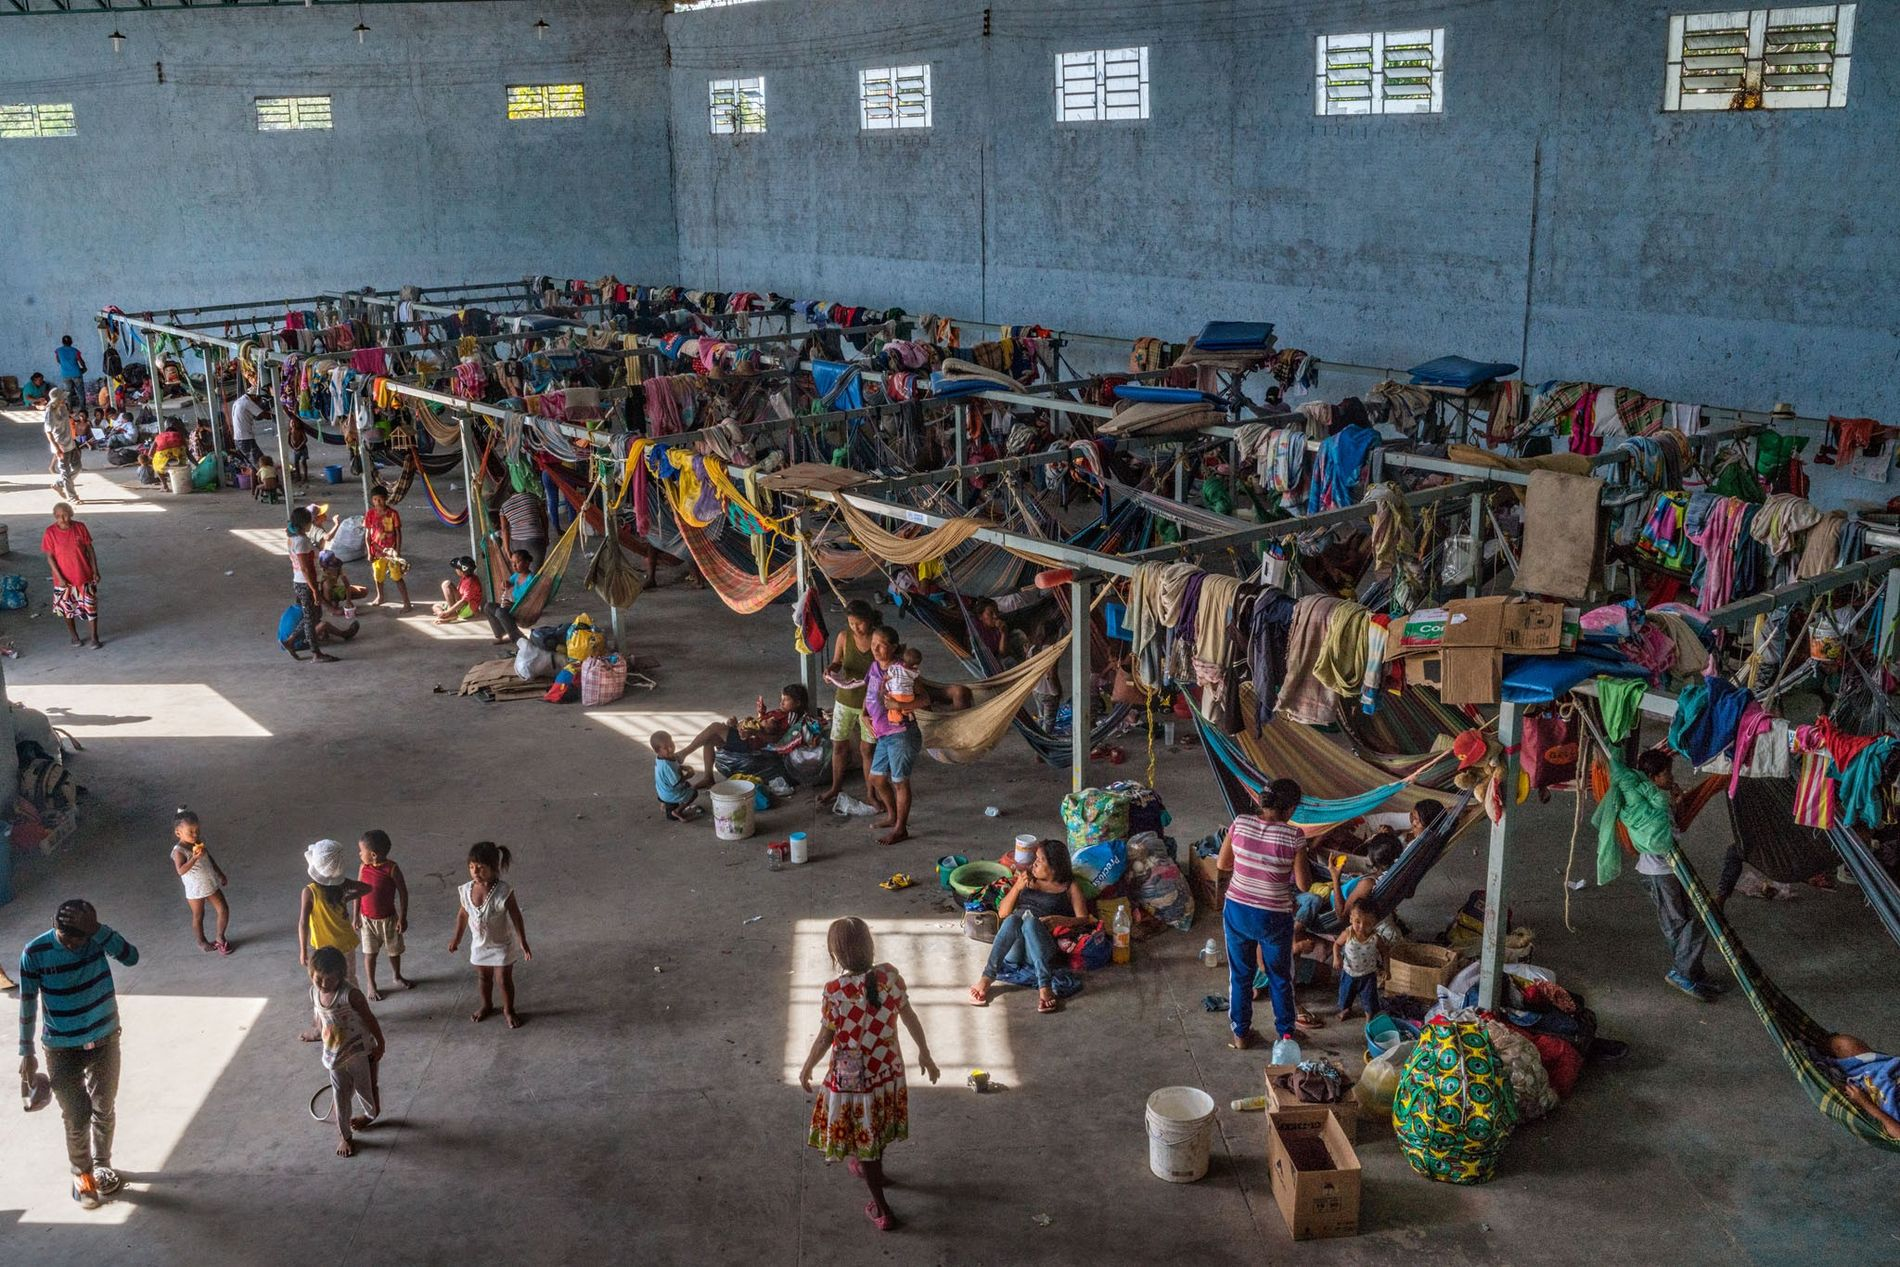 About 500 members of the Warao tribe live at a concrete shelter outfitted with hammocks and tents in Pacaraima, Brazil. Crowding and unsanitary conditions have contributed to widespread disease.